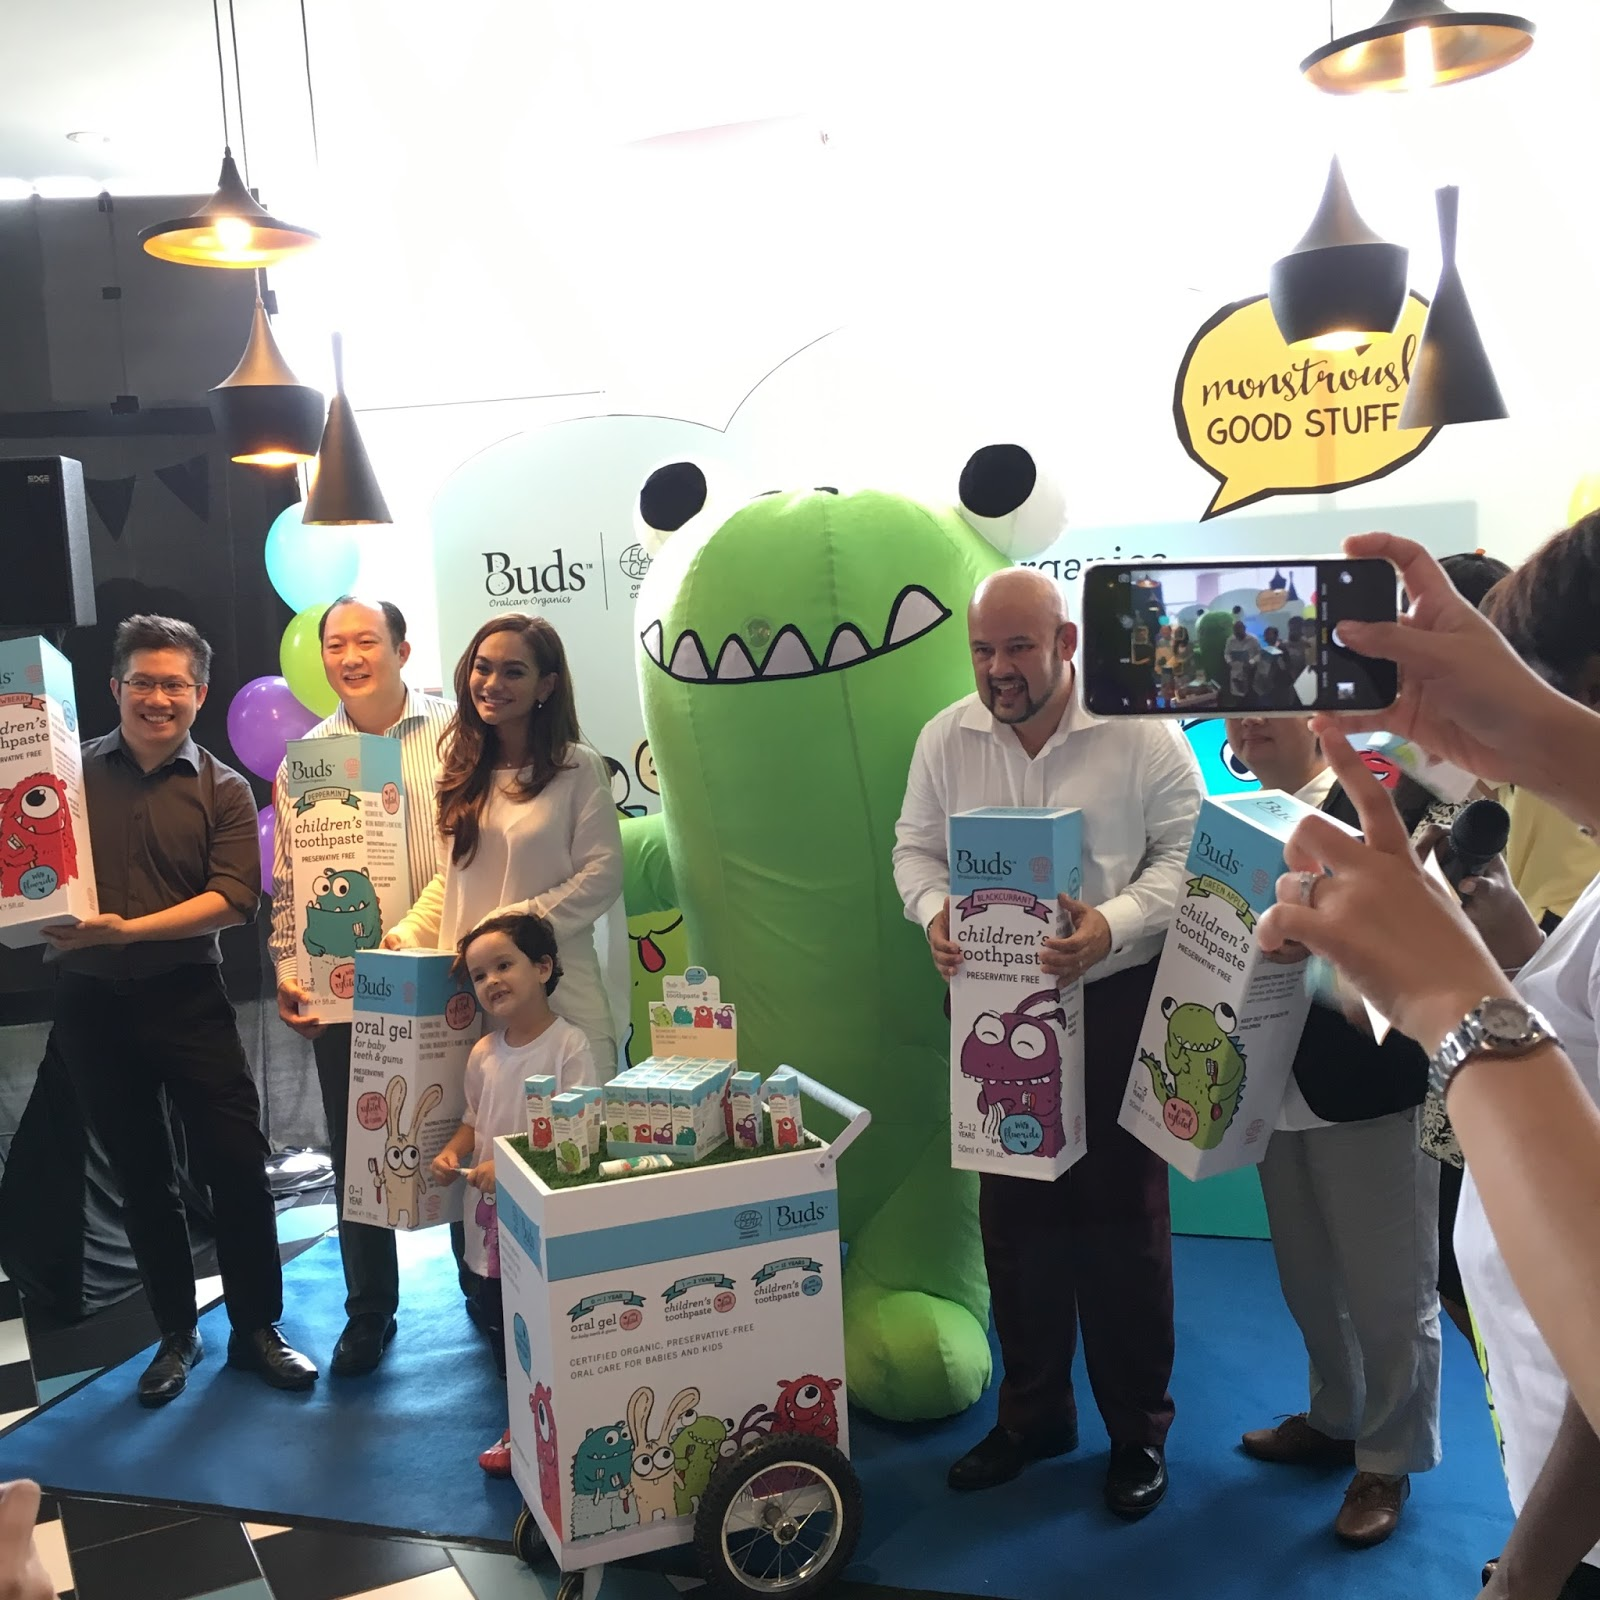 Buds Oralcare Organics Toothpastes Childrens Toothpaste 50ml 3 12 Year Green Apple Also Invited Dr Bernard Low Orthodontist Mr Kk Soo The Co Founder And Rd Director To Further Explain About